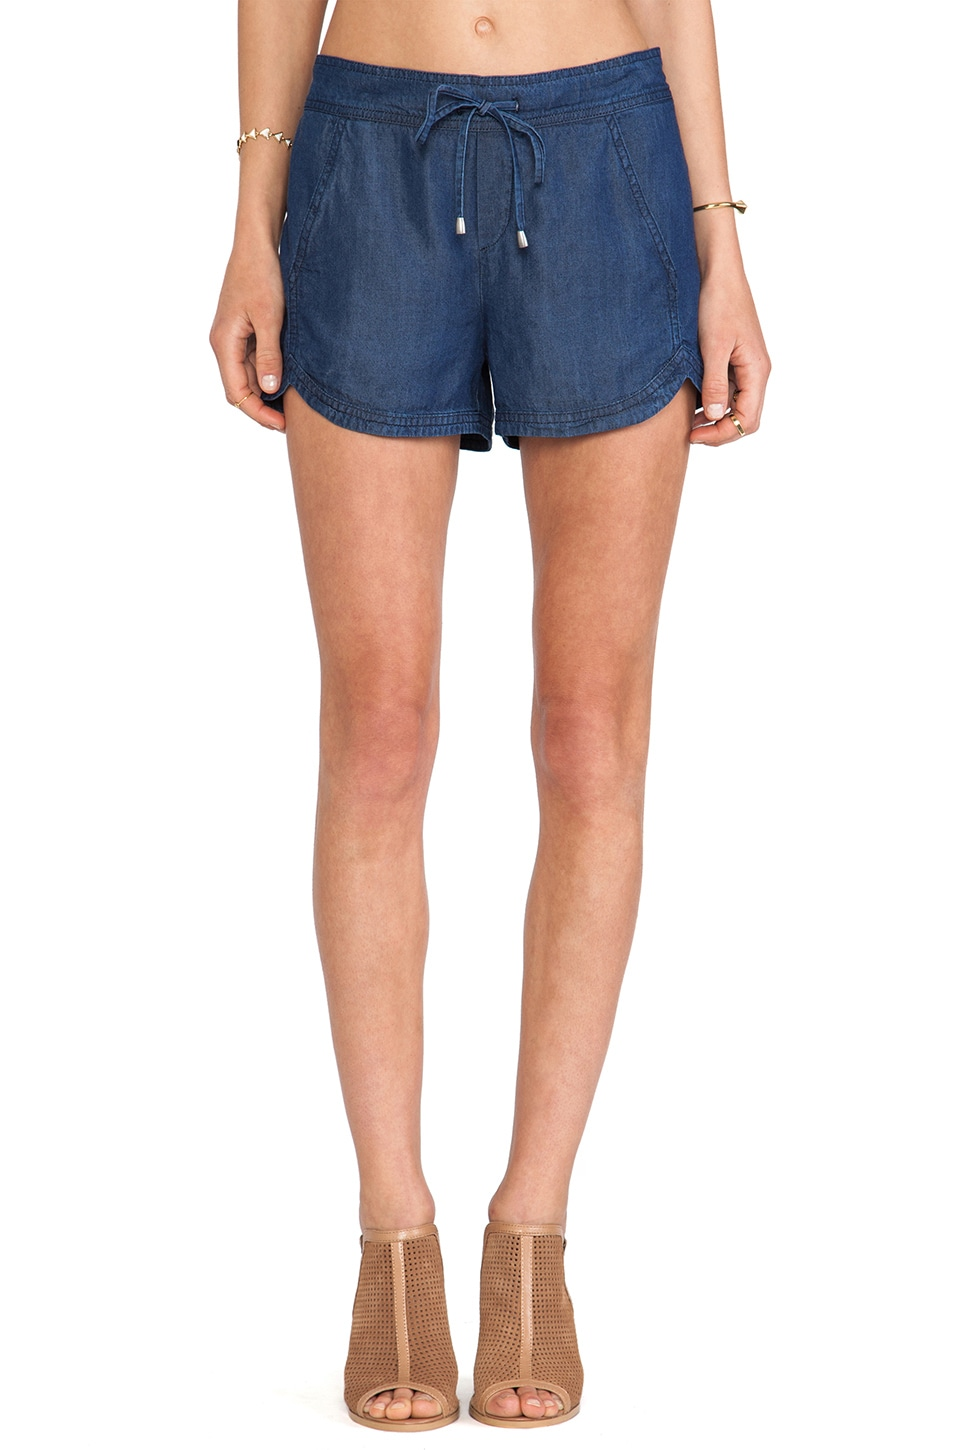 Splendid Indigo Dye Shorts in Dark Wash